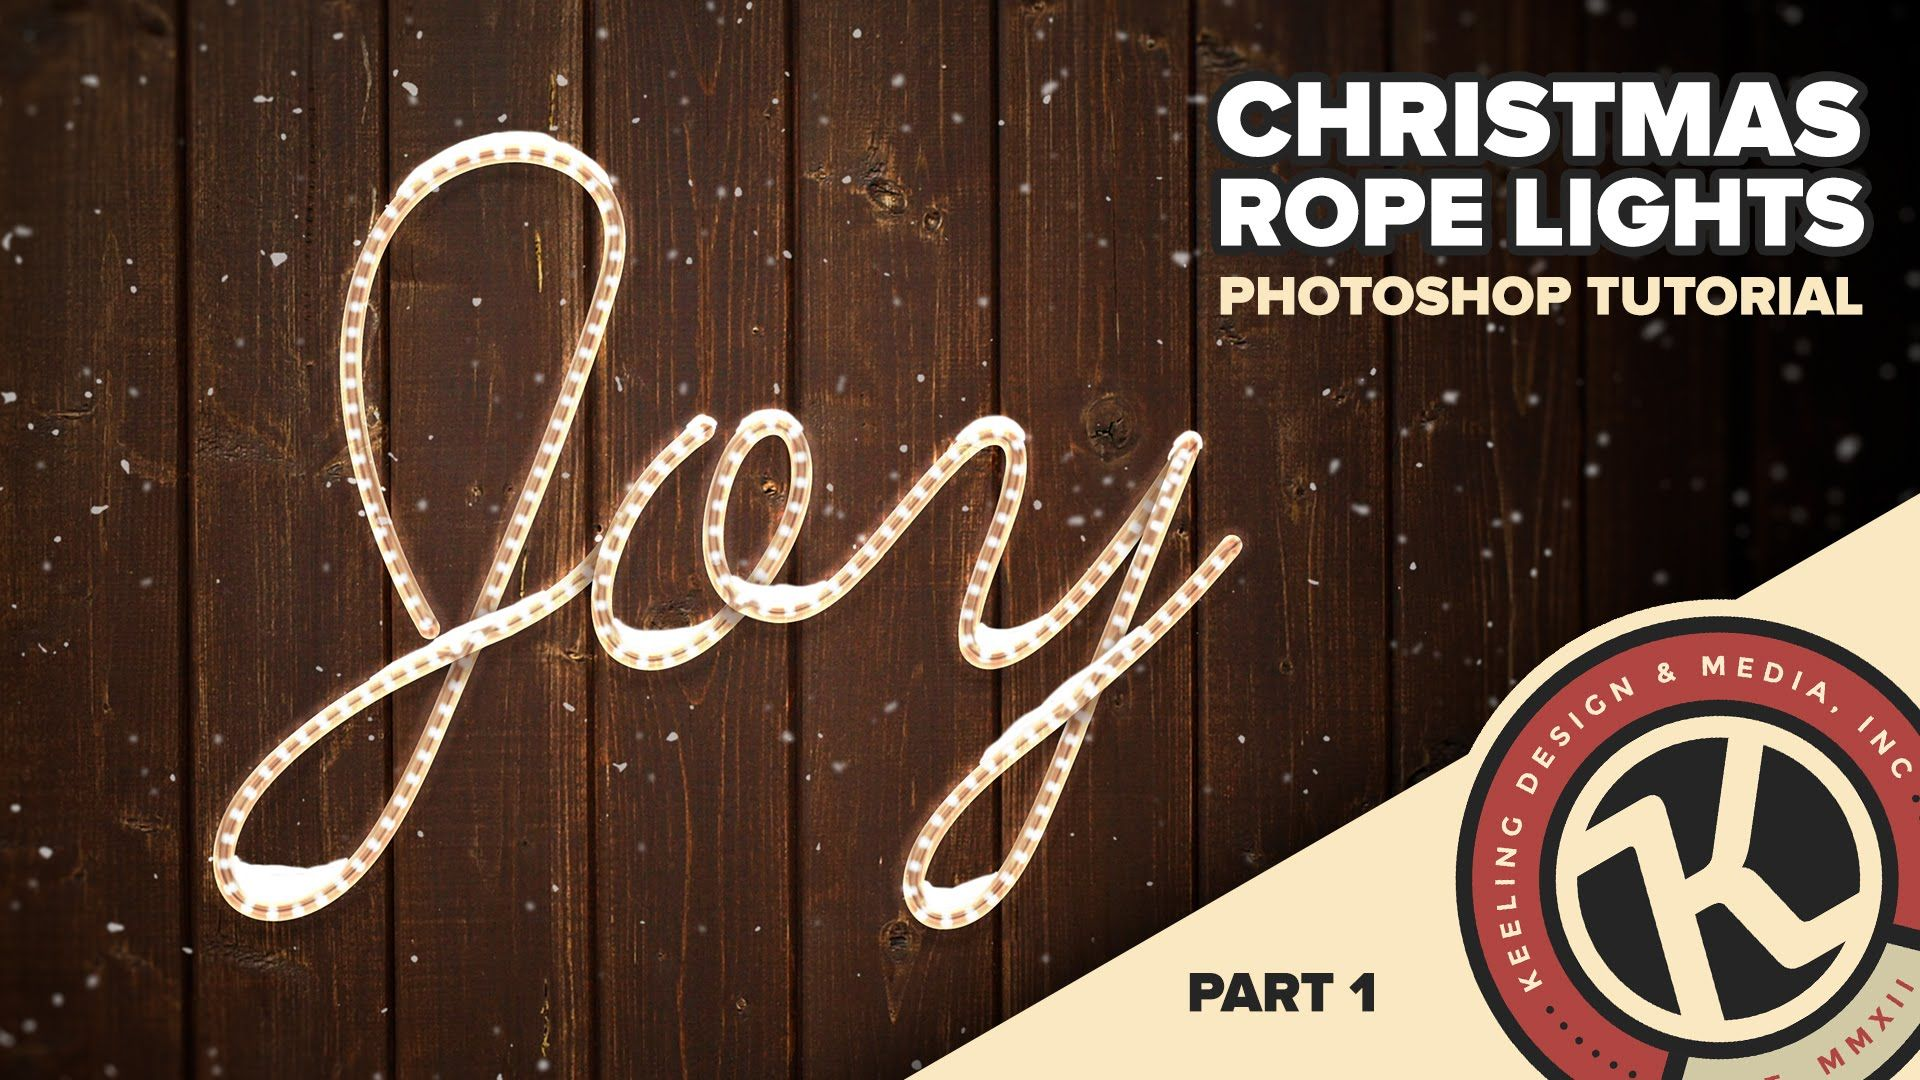 Photoshop tutorial christmas rope lights part 1 awesome photoshop tutorial christmas rope lights part 1 baditri Choice Image